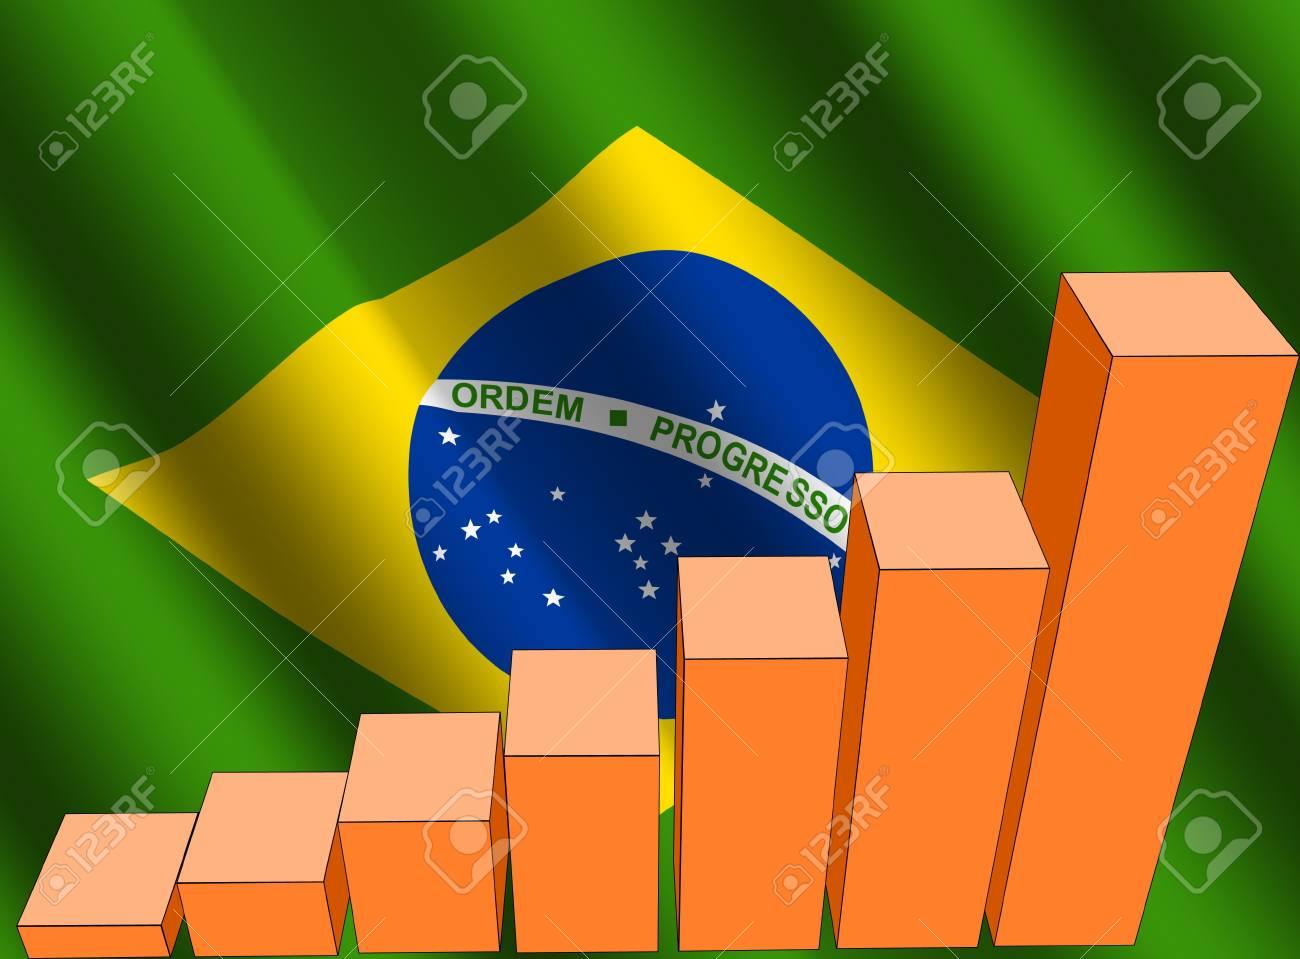 bar chart and rippled Brazilian flag illustration Stock Photo - 3575416